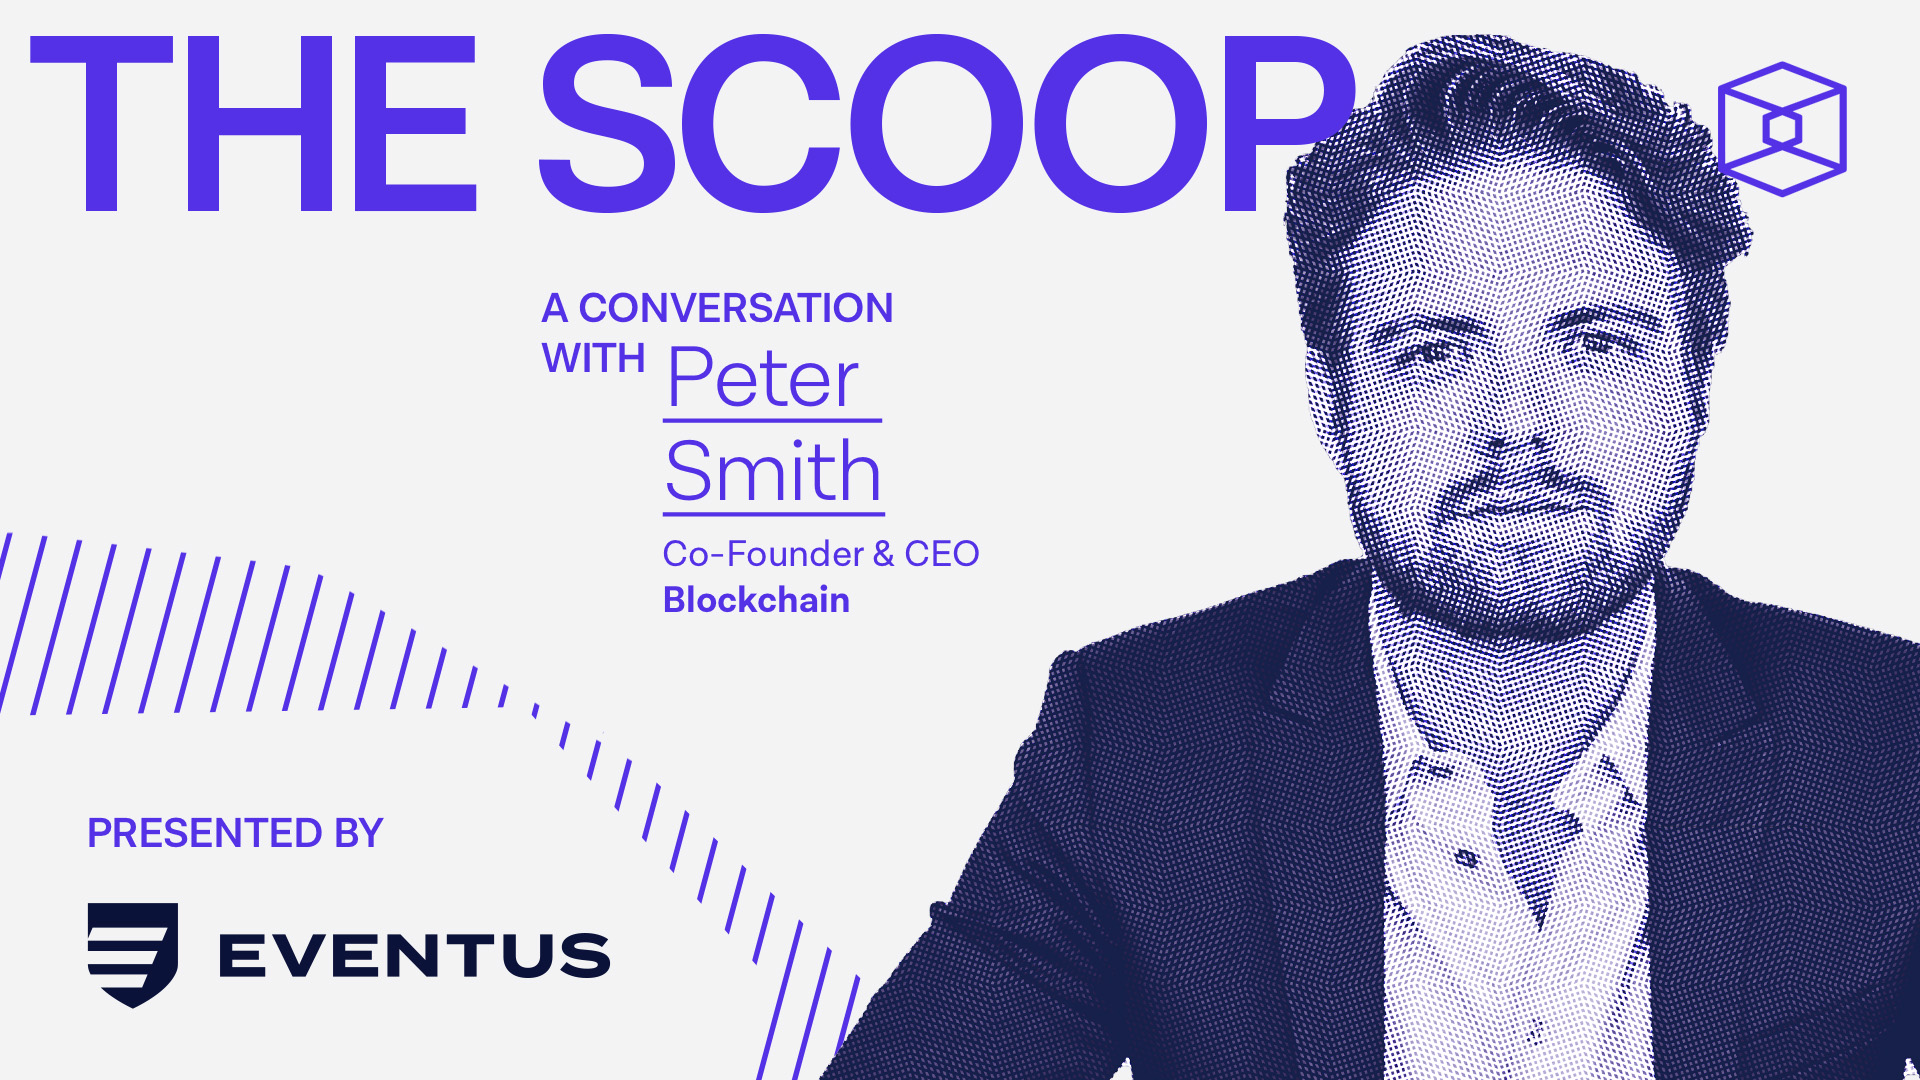 Blockchain's Peter Smith sees innovation but thinks some will be unprepared for a 'Crypto Winter'